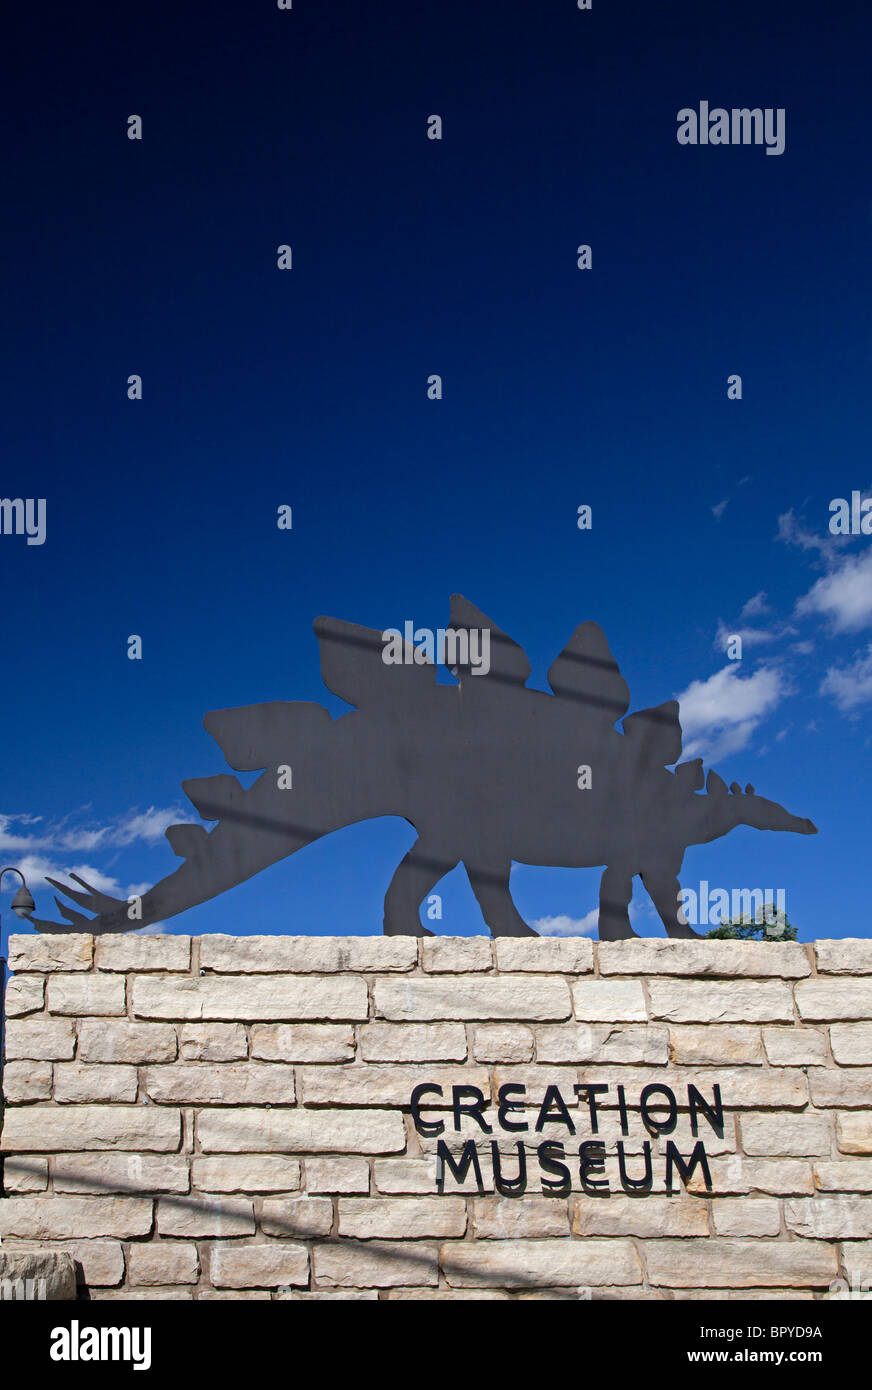 Creation Museum - Stock Image